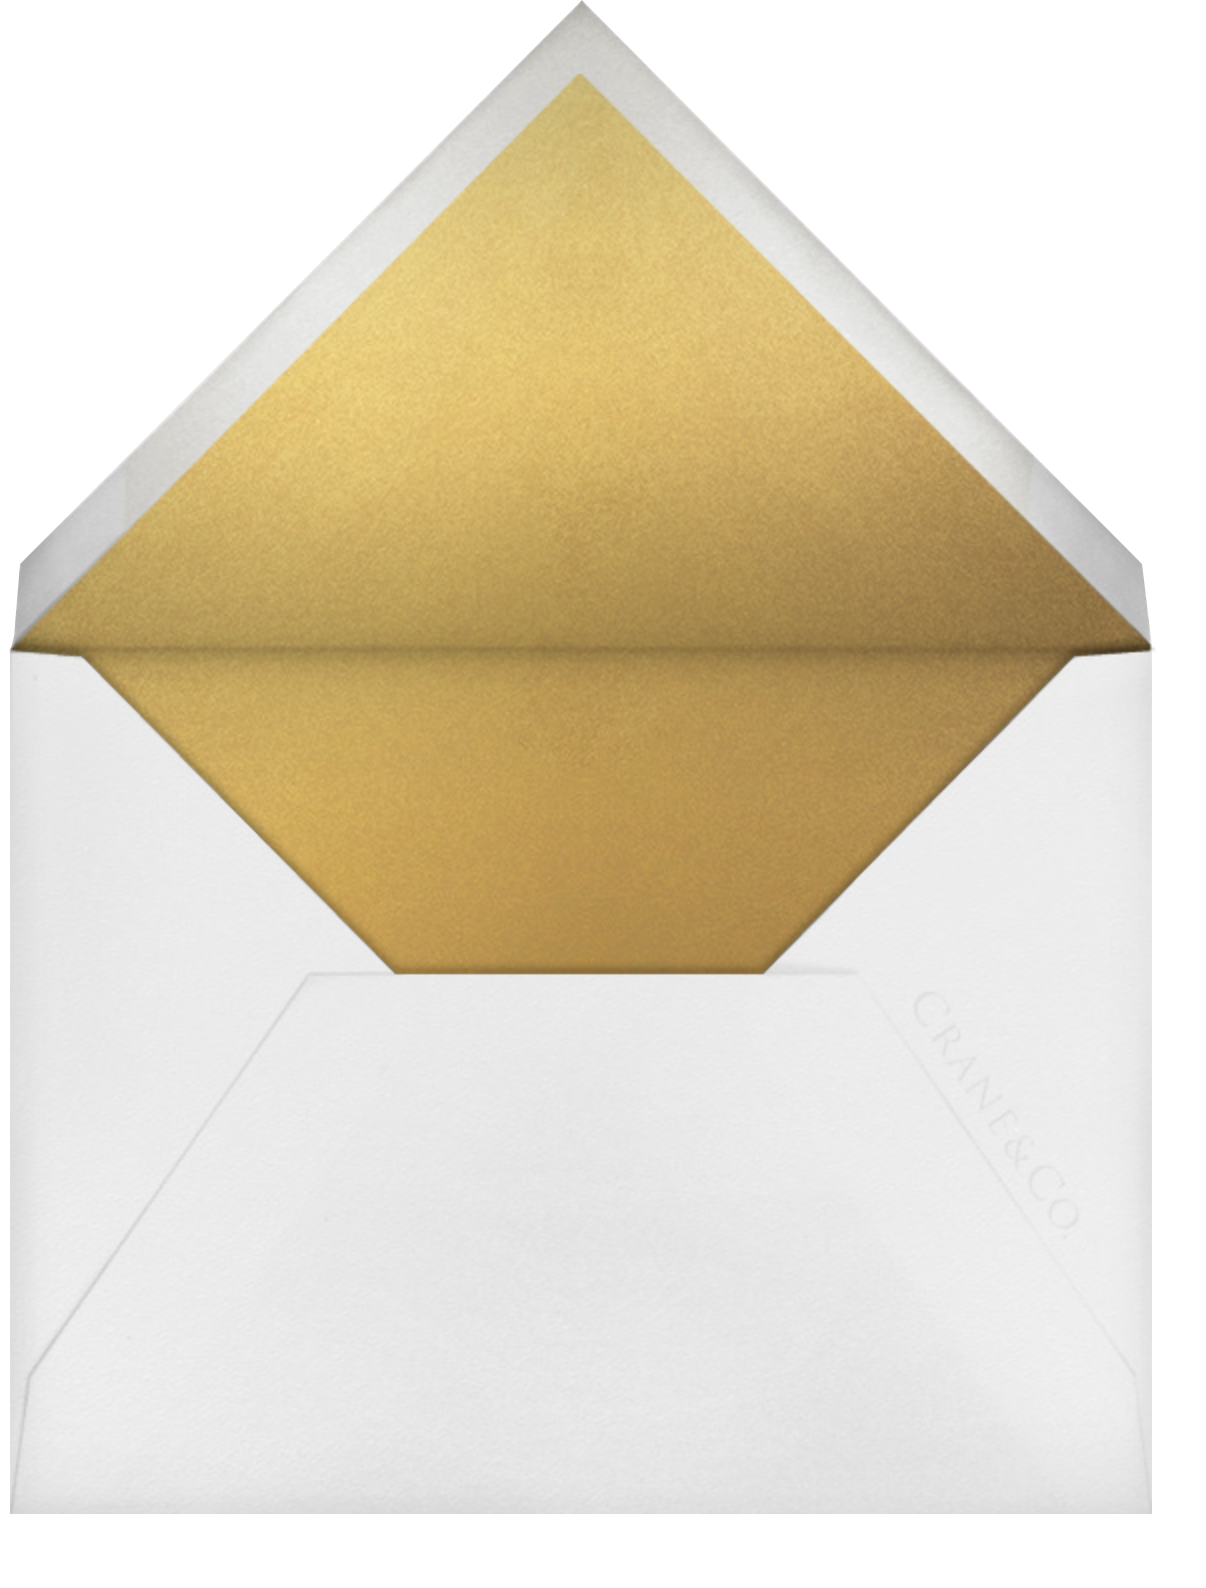 Notch (Save the Date) - Gold - Vera Wang - null - envelope back